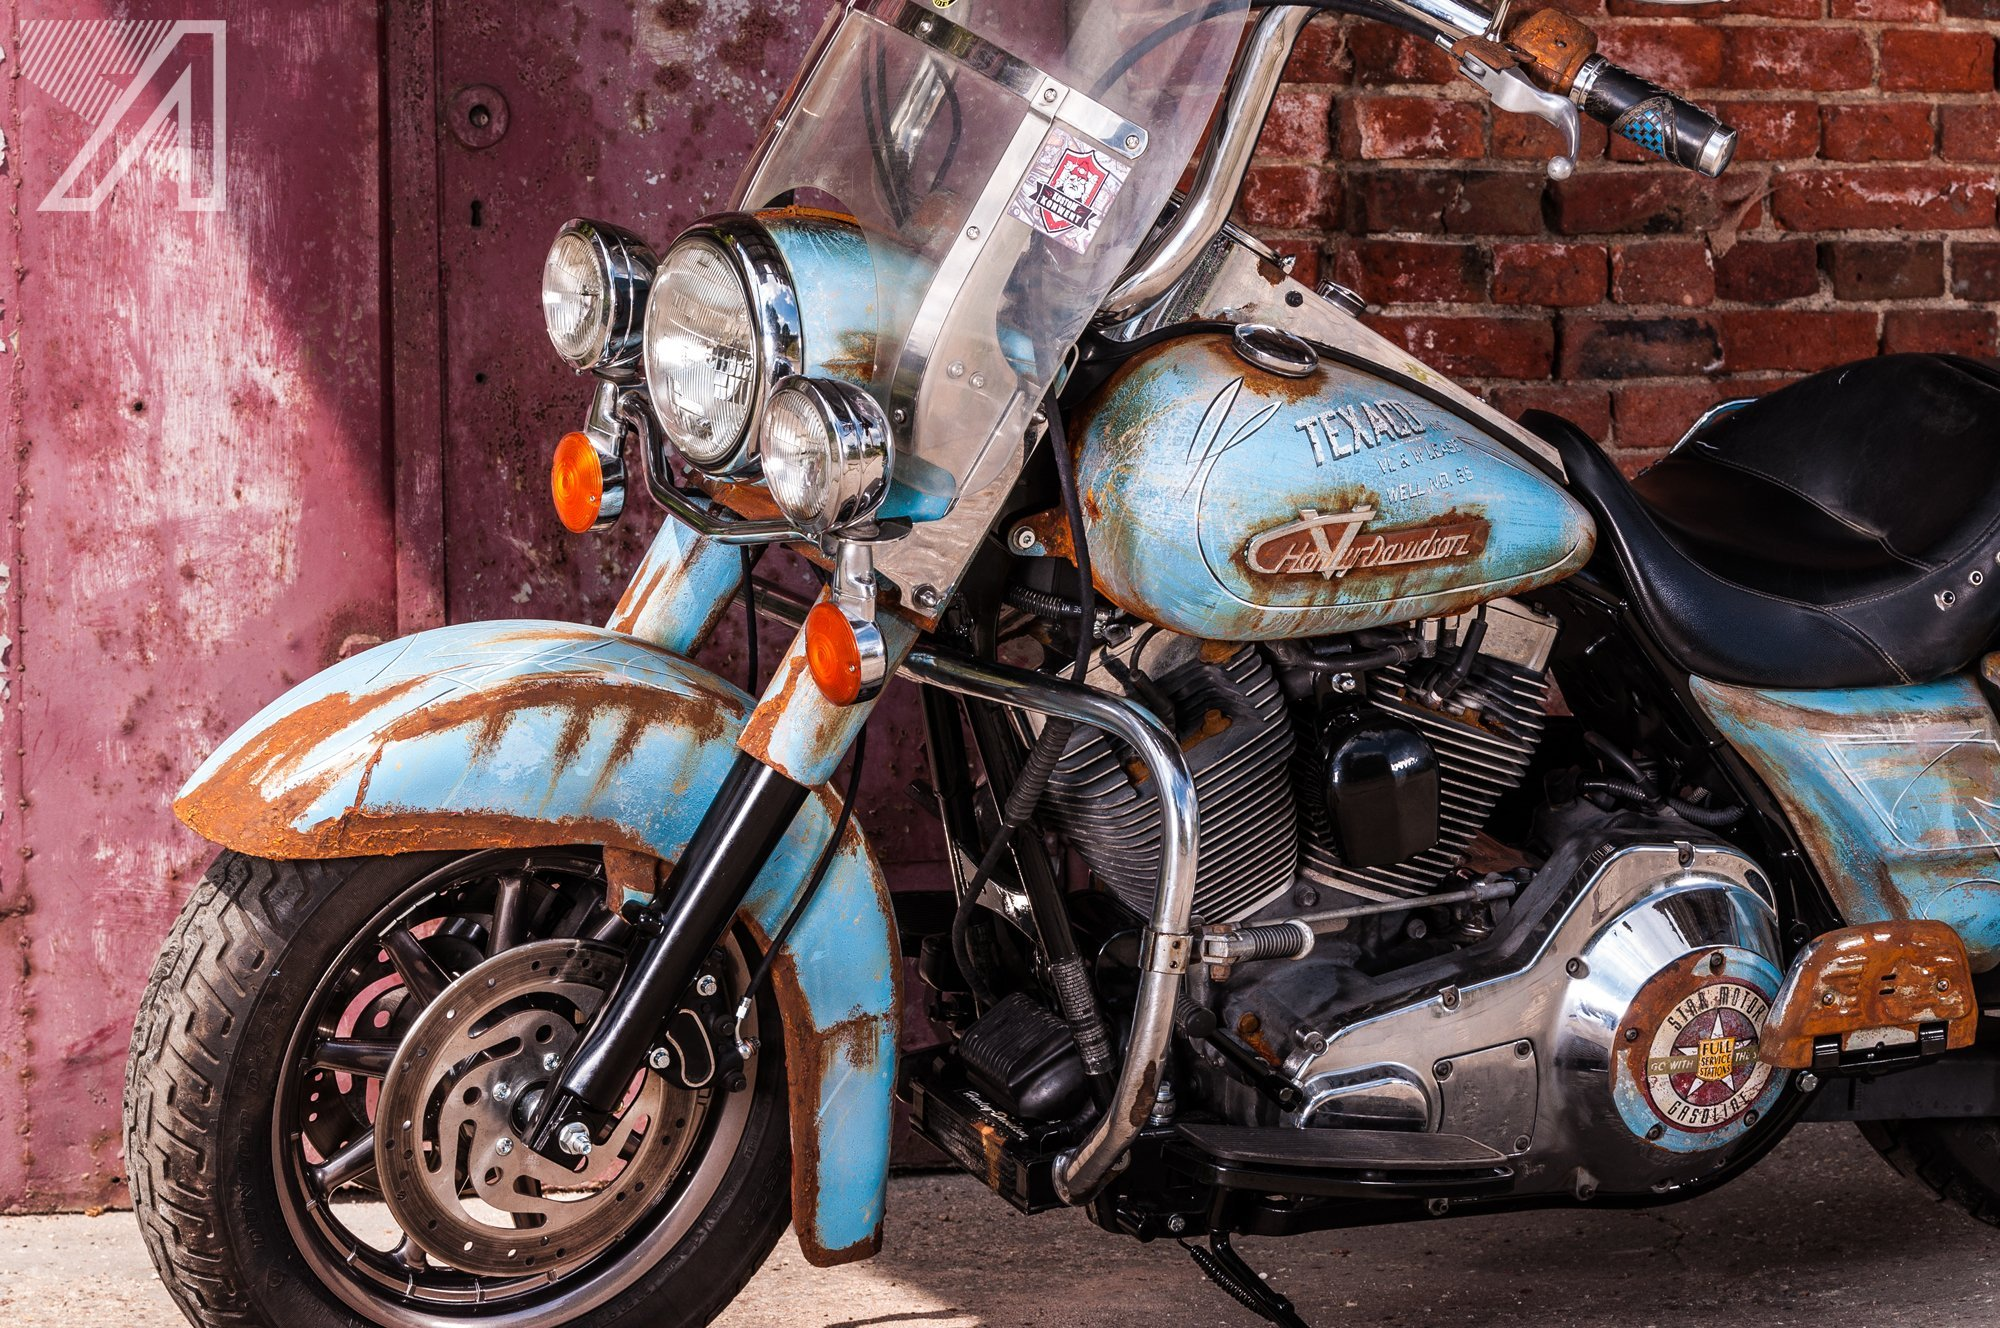 2016-10::1476031670-h-d-road-king-patina-rust-6.jpg